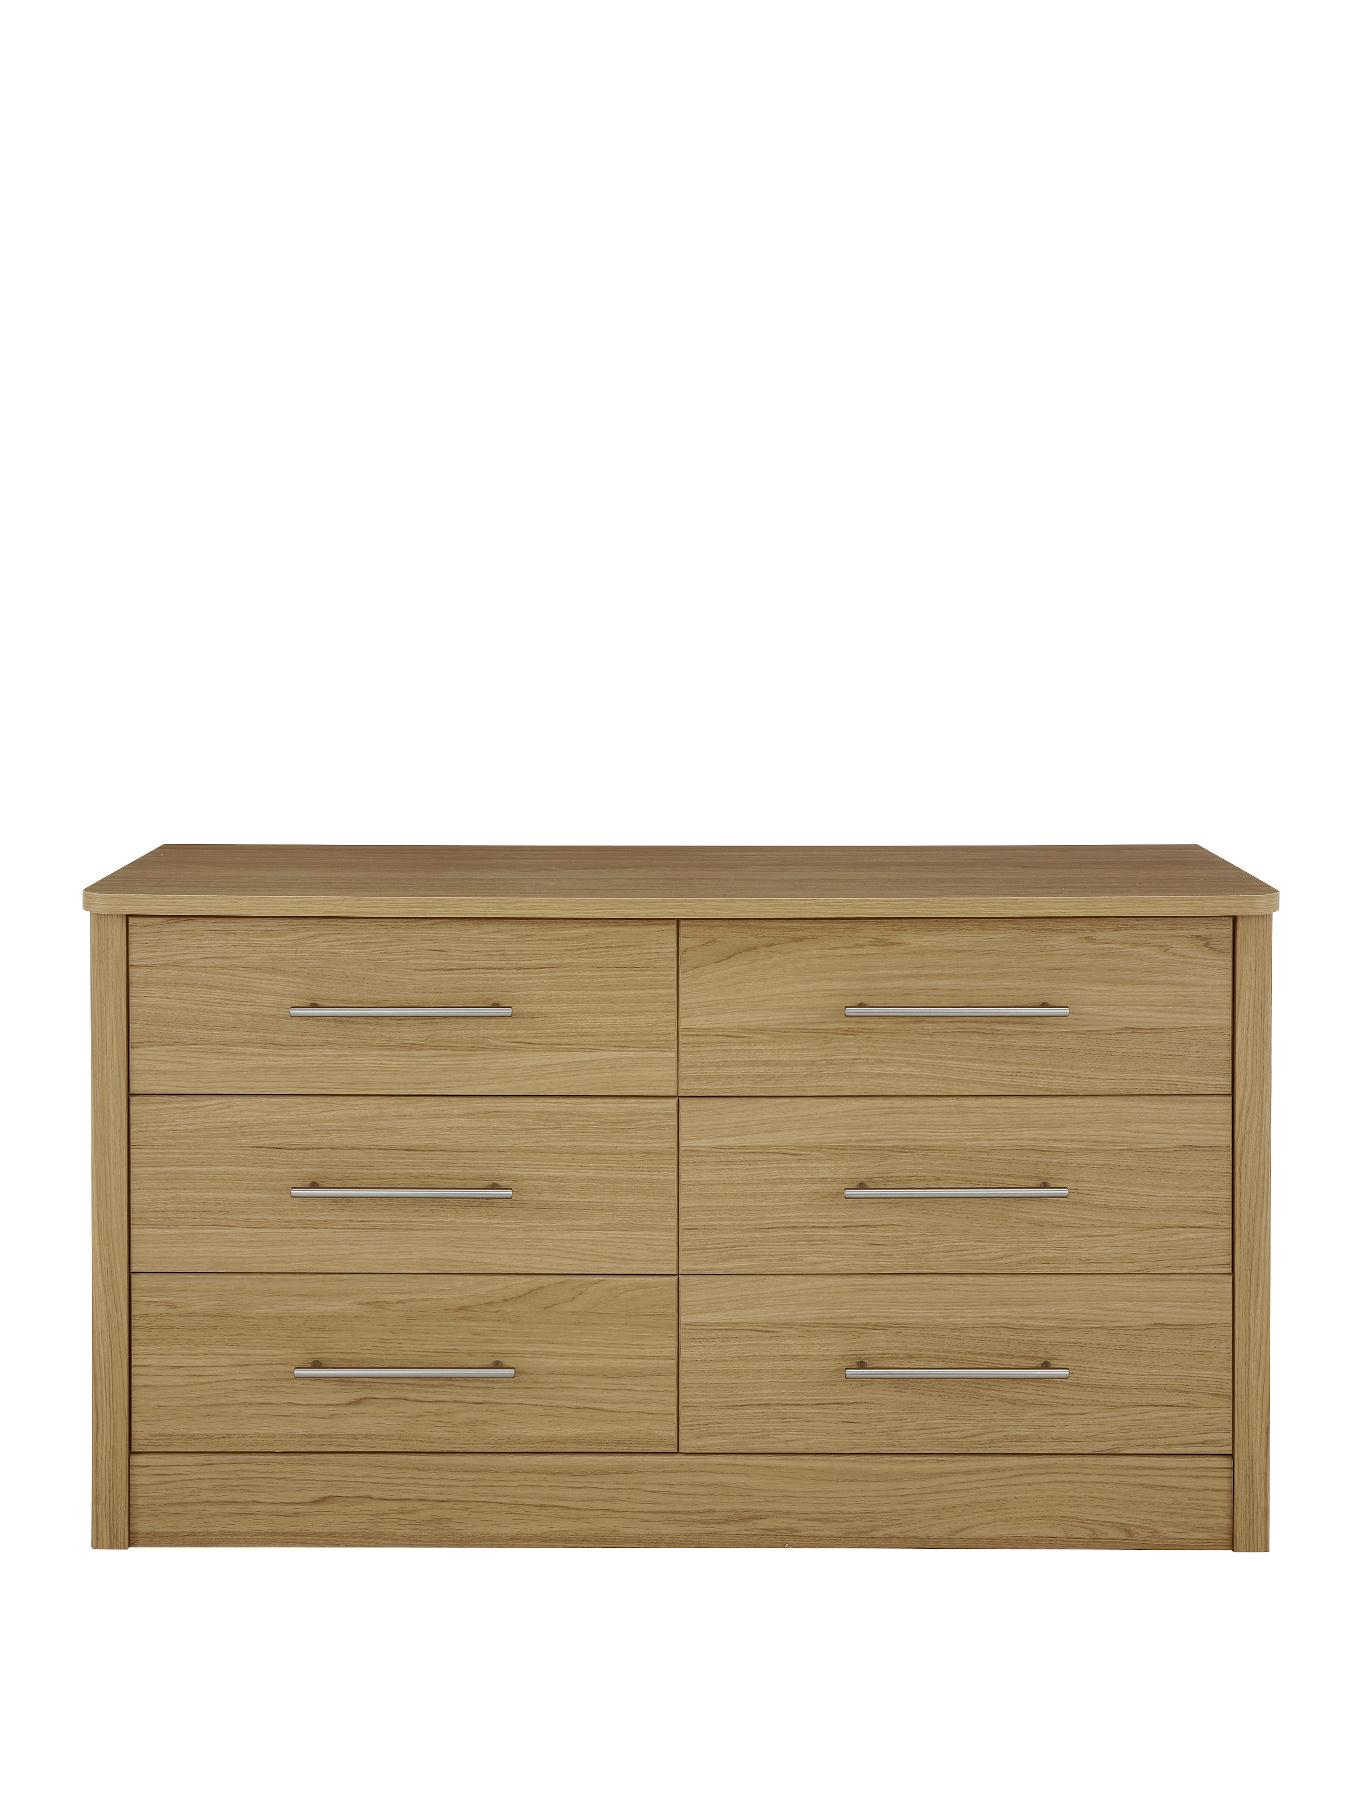 New Liberty Ready Assembled 3 + 3 Chest of Drawers, White,Black